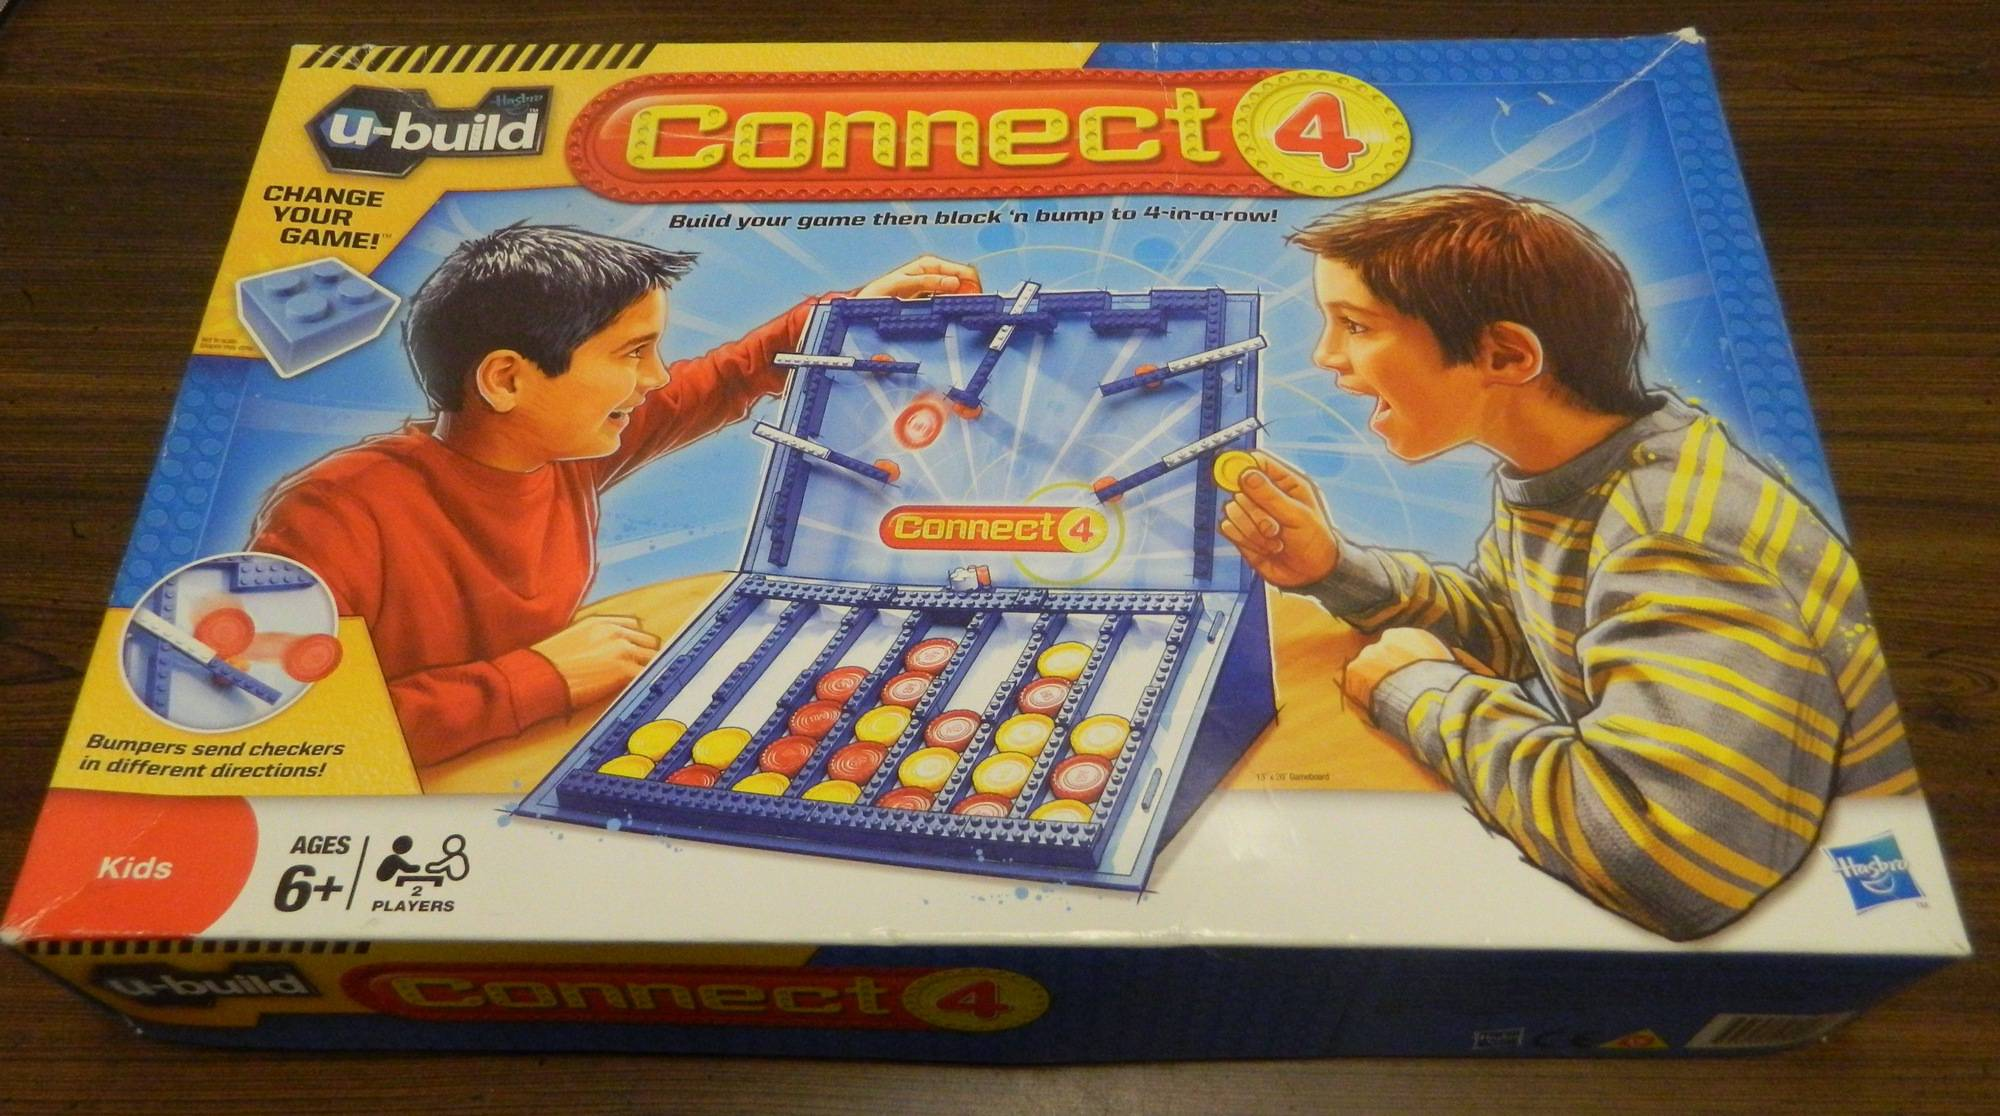 Box for U-Build Connect 4